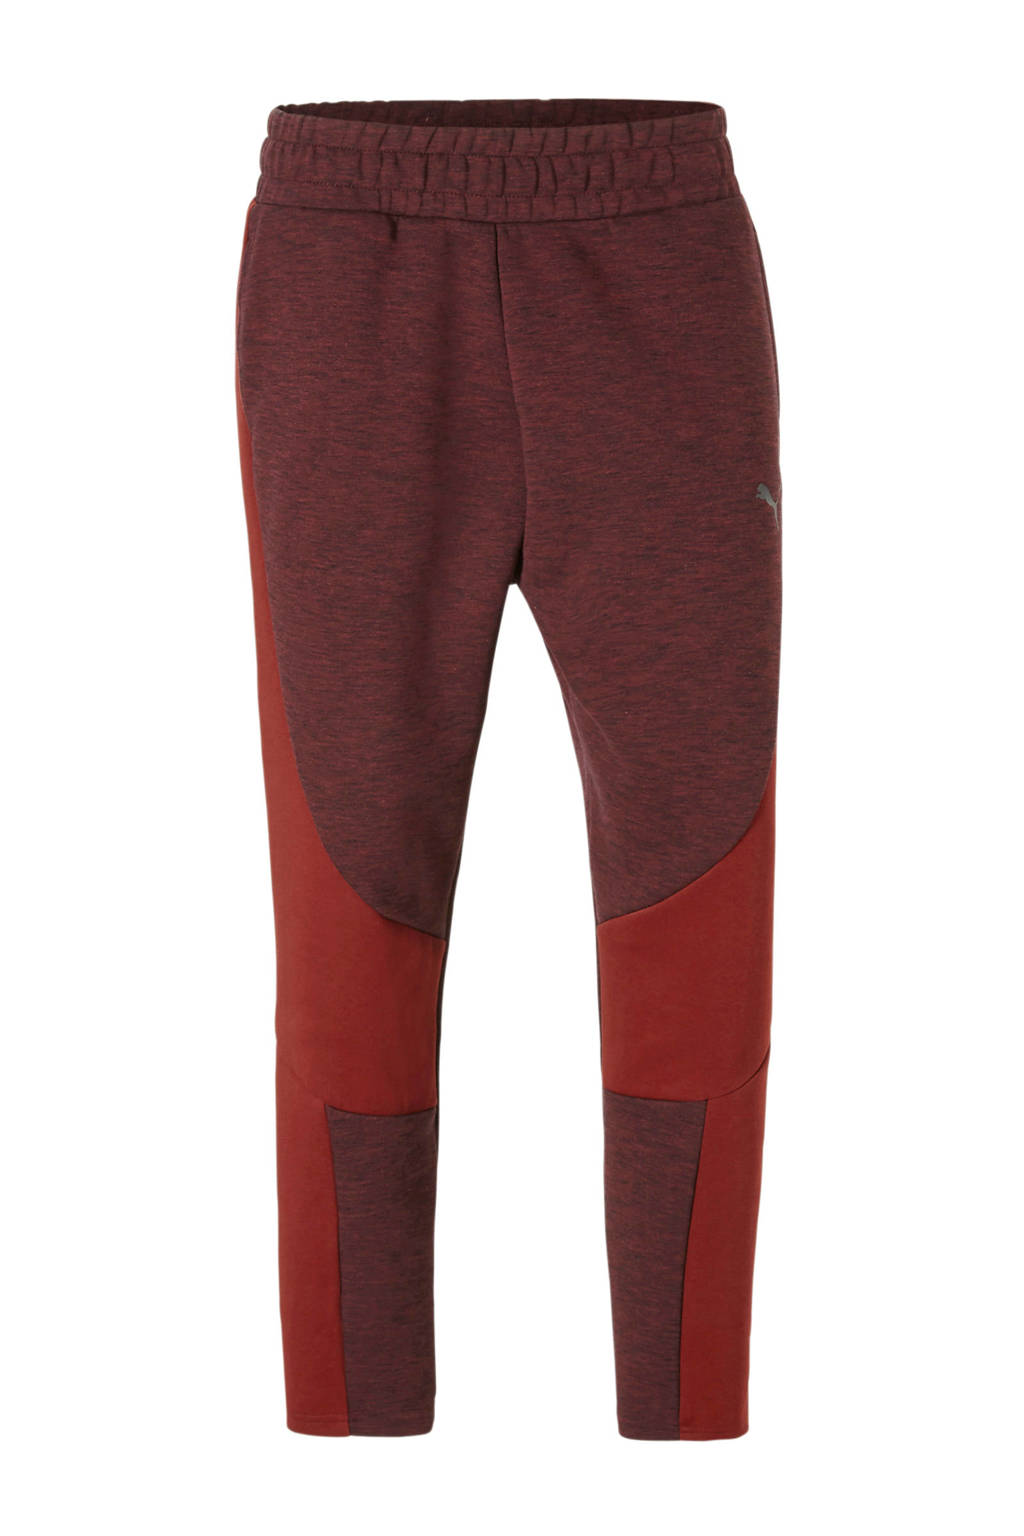 Puma 7/8 joggingbroek donkerrood, Donkerrood